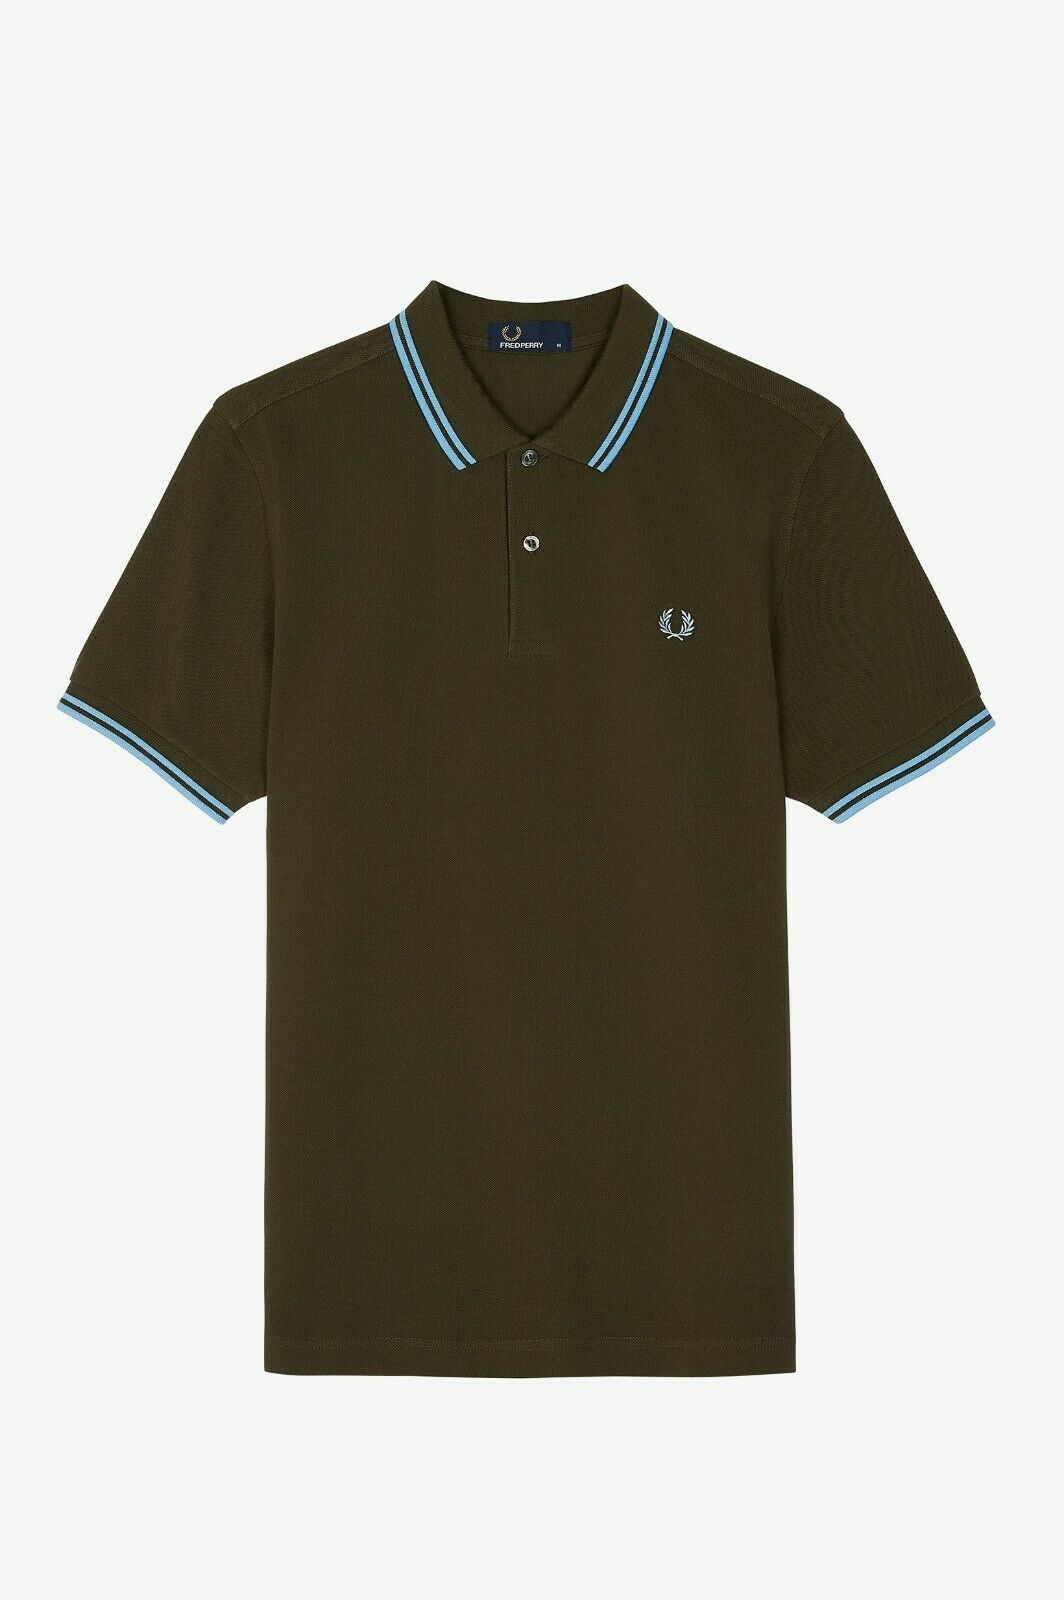 Frot Perry Grün   Sky Blau Polo T-Shirt - Twin Tipped - M3600 - 617